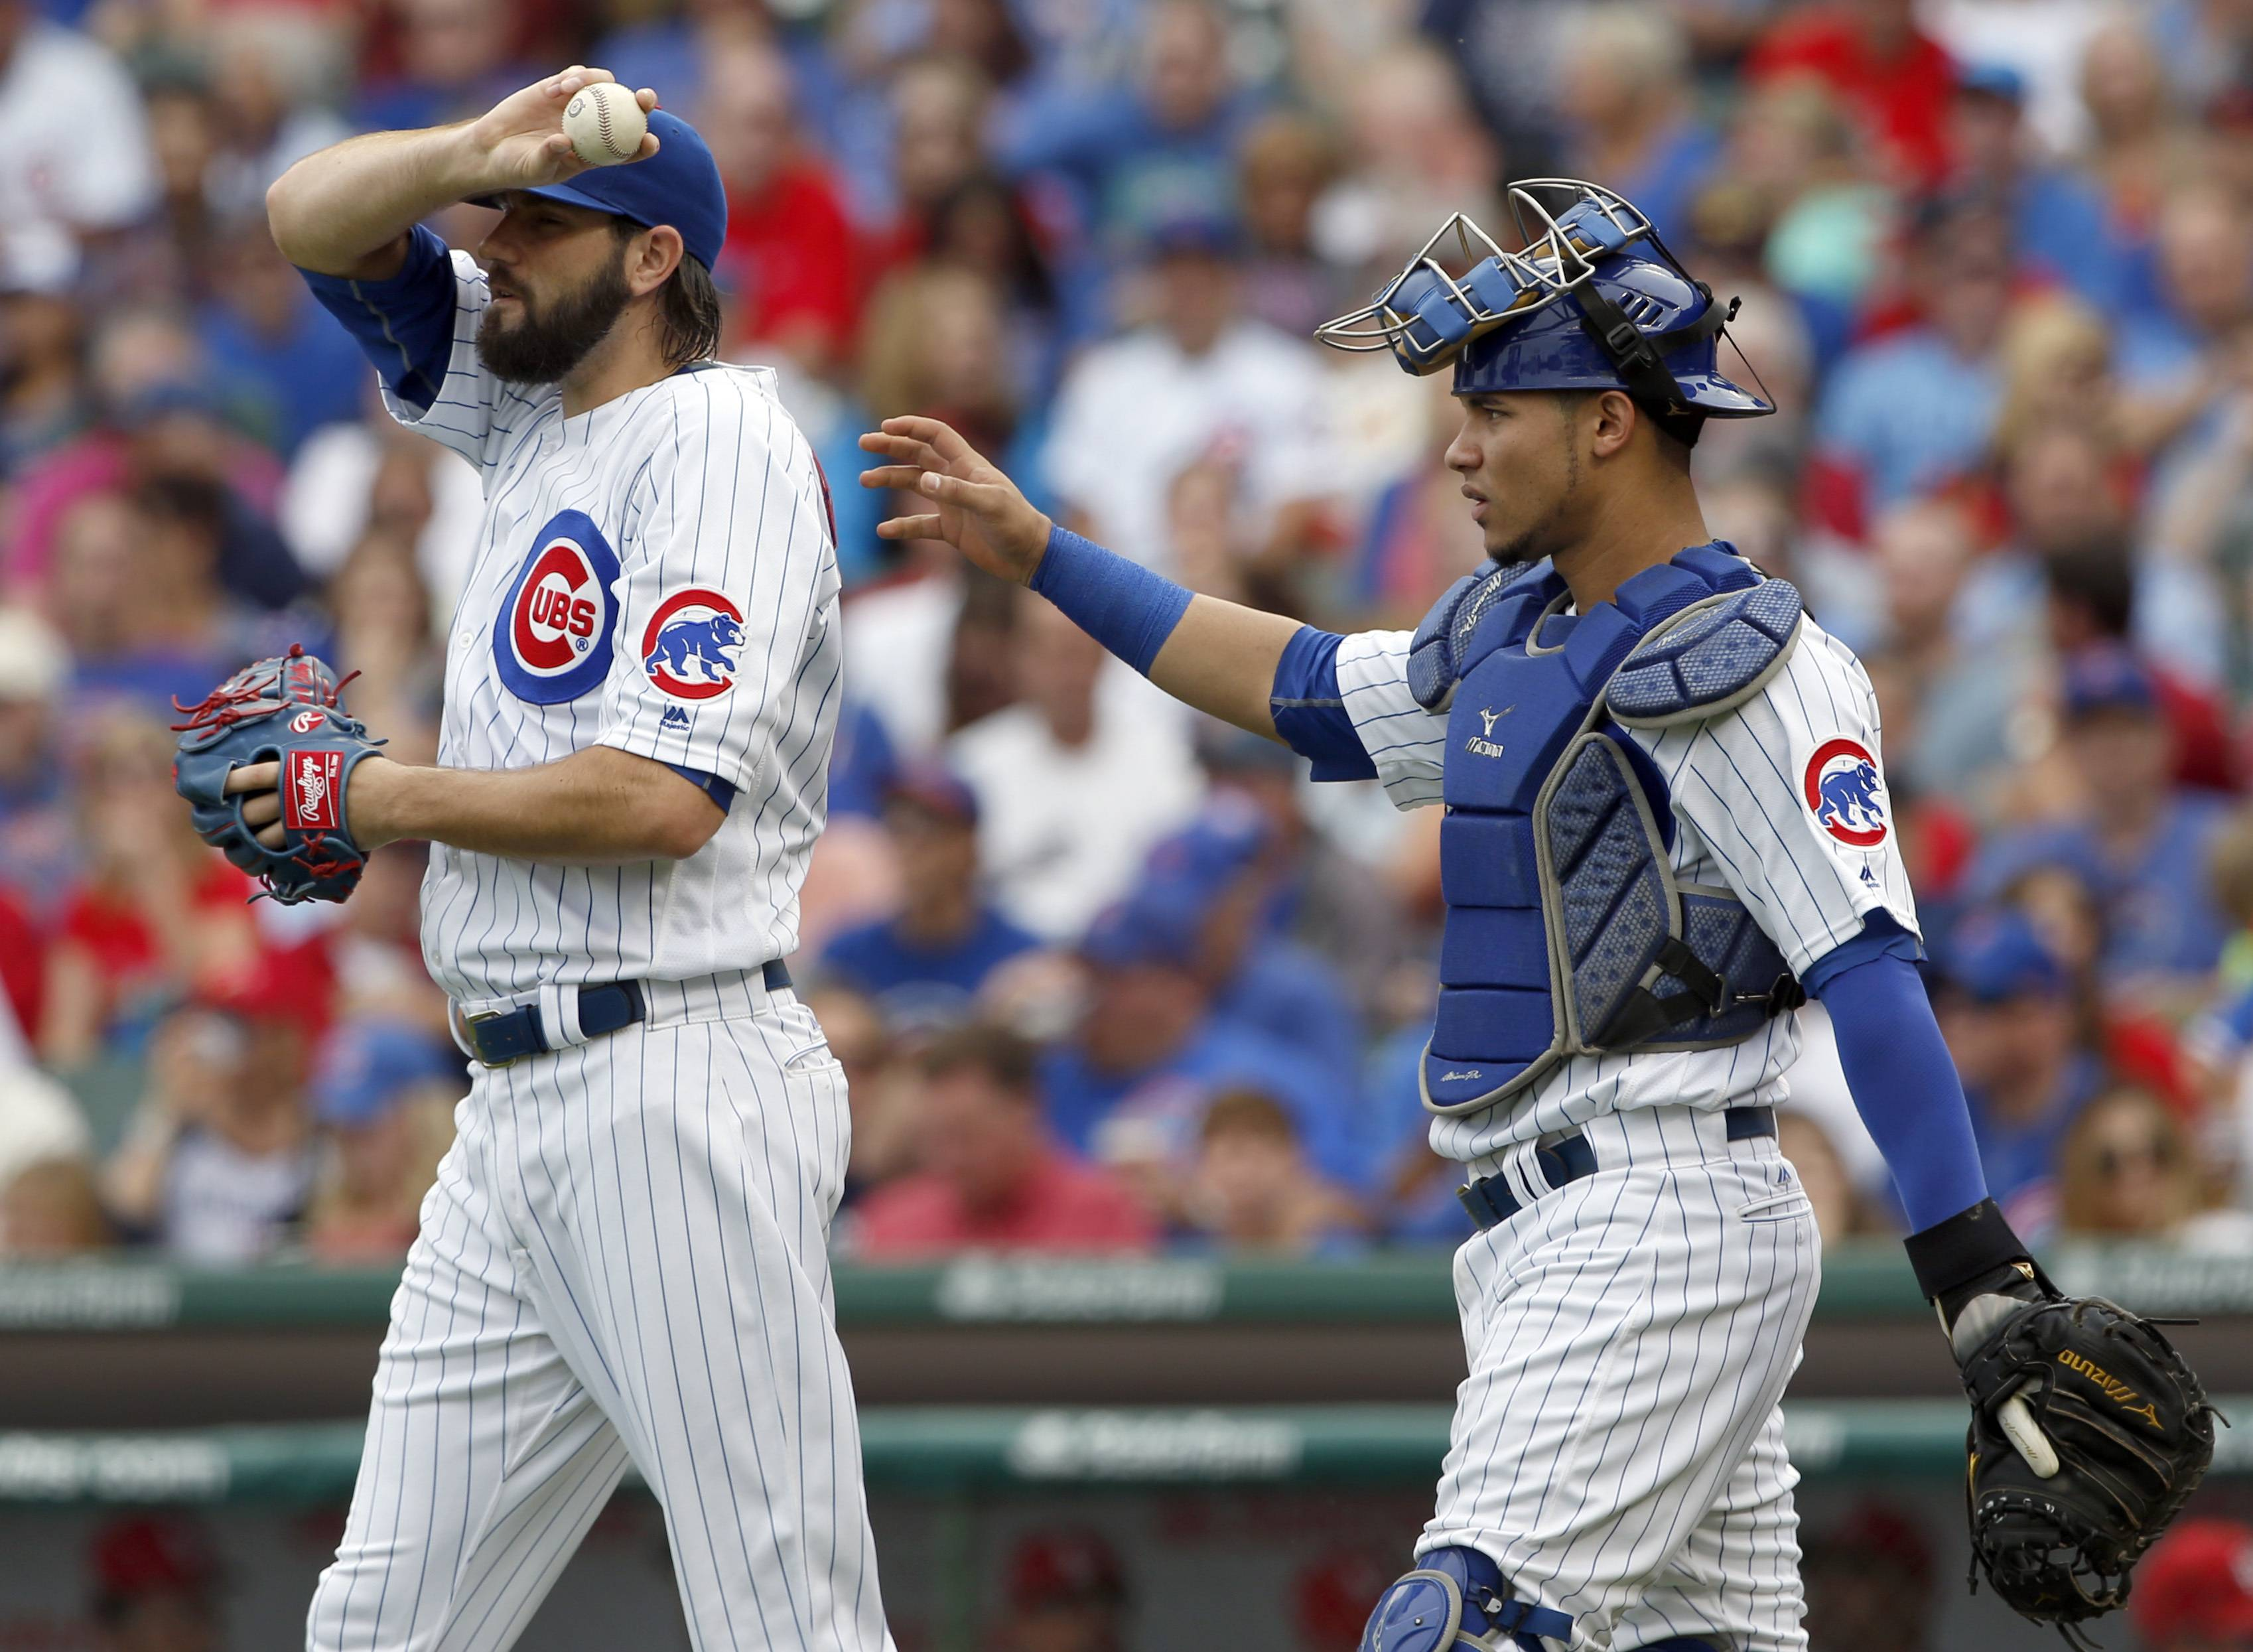 Right-hander Jason Hammel lasted only 2⅓ innings for the Chicago Cubs Saturday as they fell 10-4 to the St. Louis Cardinals at Wrigley Field. The Cardinals scored 4 runs off Hammel in the first inning.